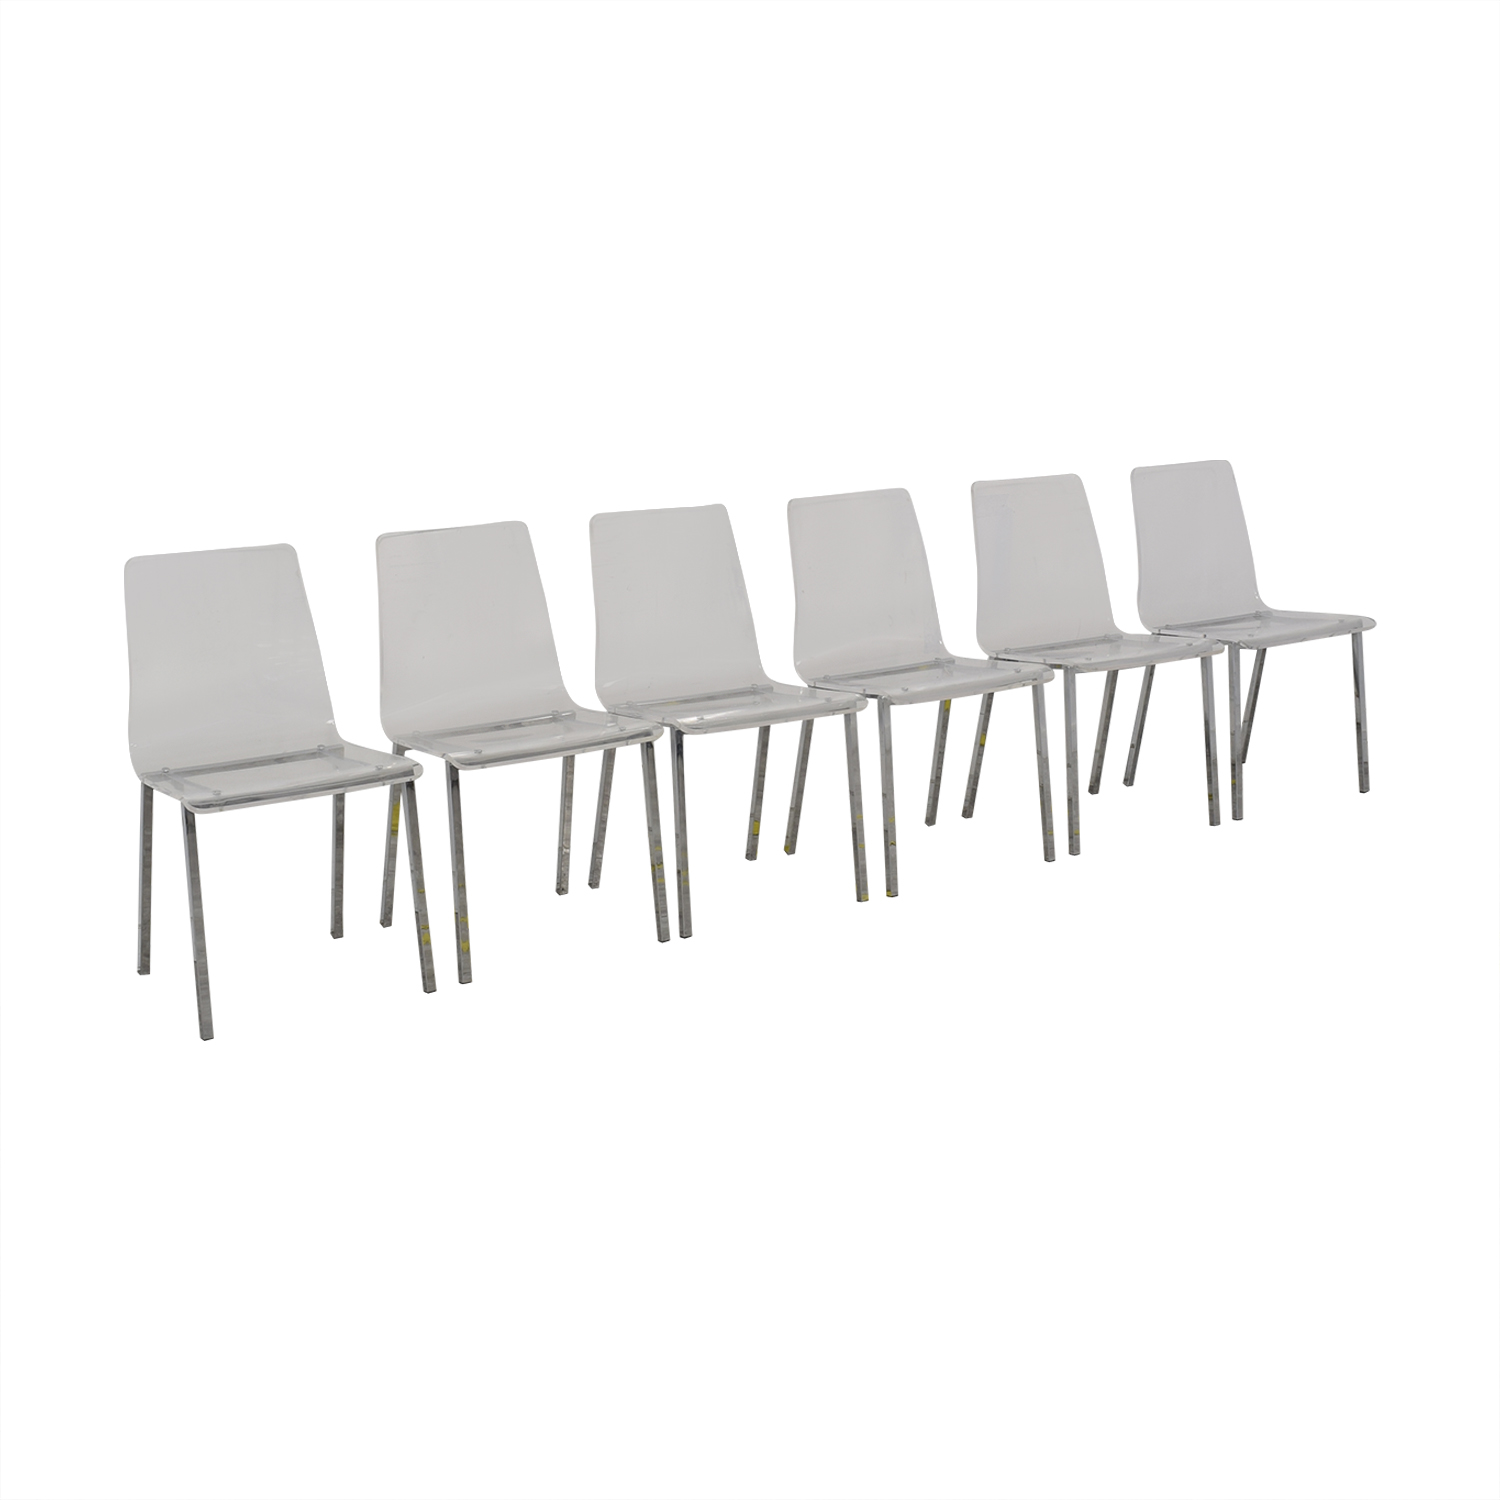 buy CB2 Acrylic Vapor Dining Chairs CB2 Dining Chairs